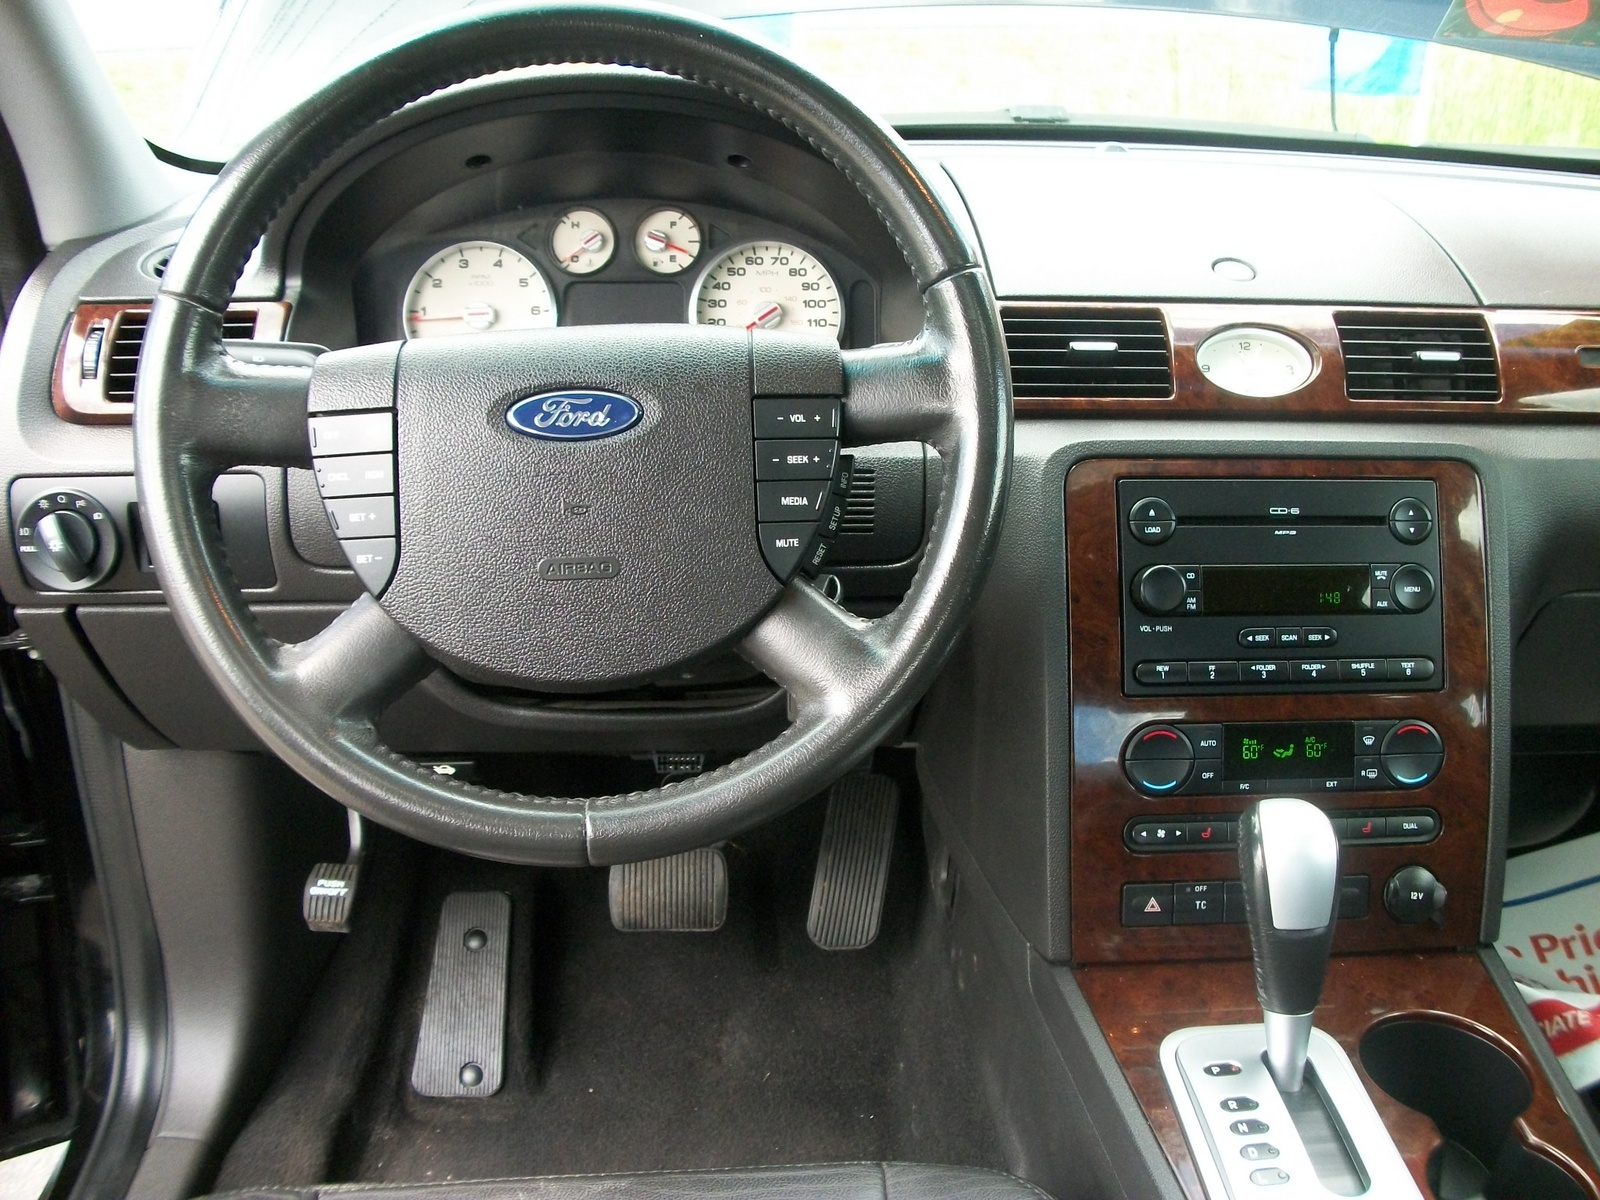 Ford Five Hundred interior #2